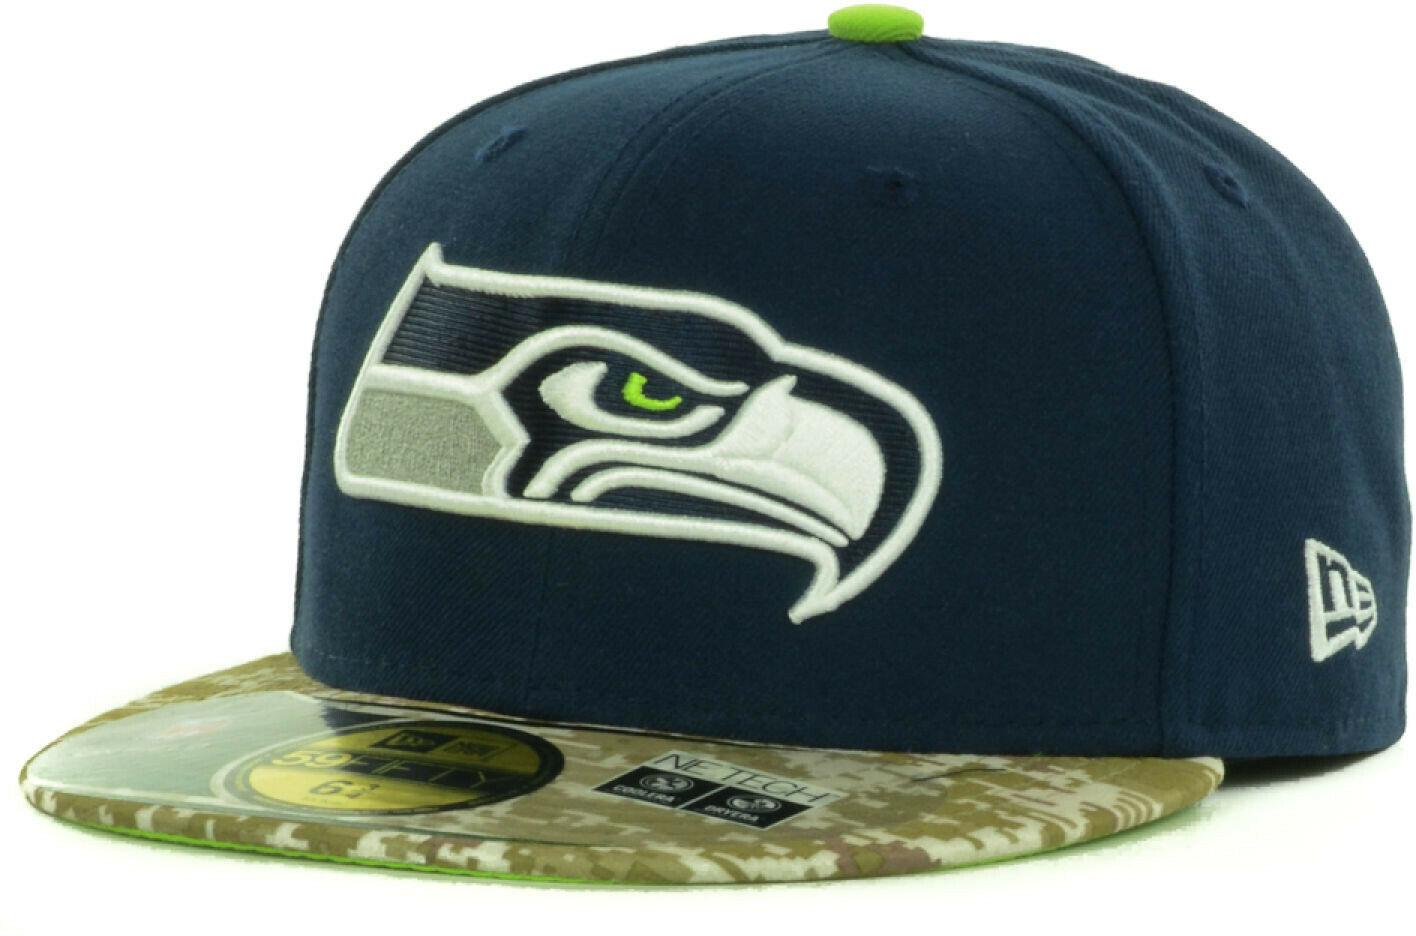 Primary image for New Era Seattle Seahawks Salute Service Army Marines Camo Visor Fitted Hat Cap